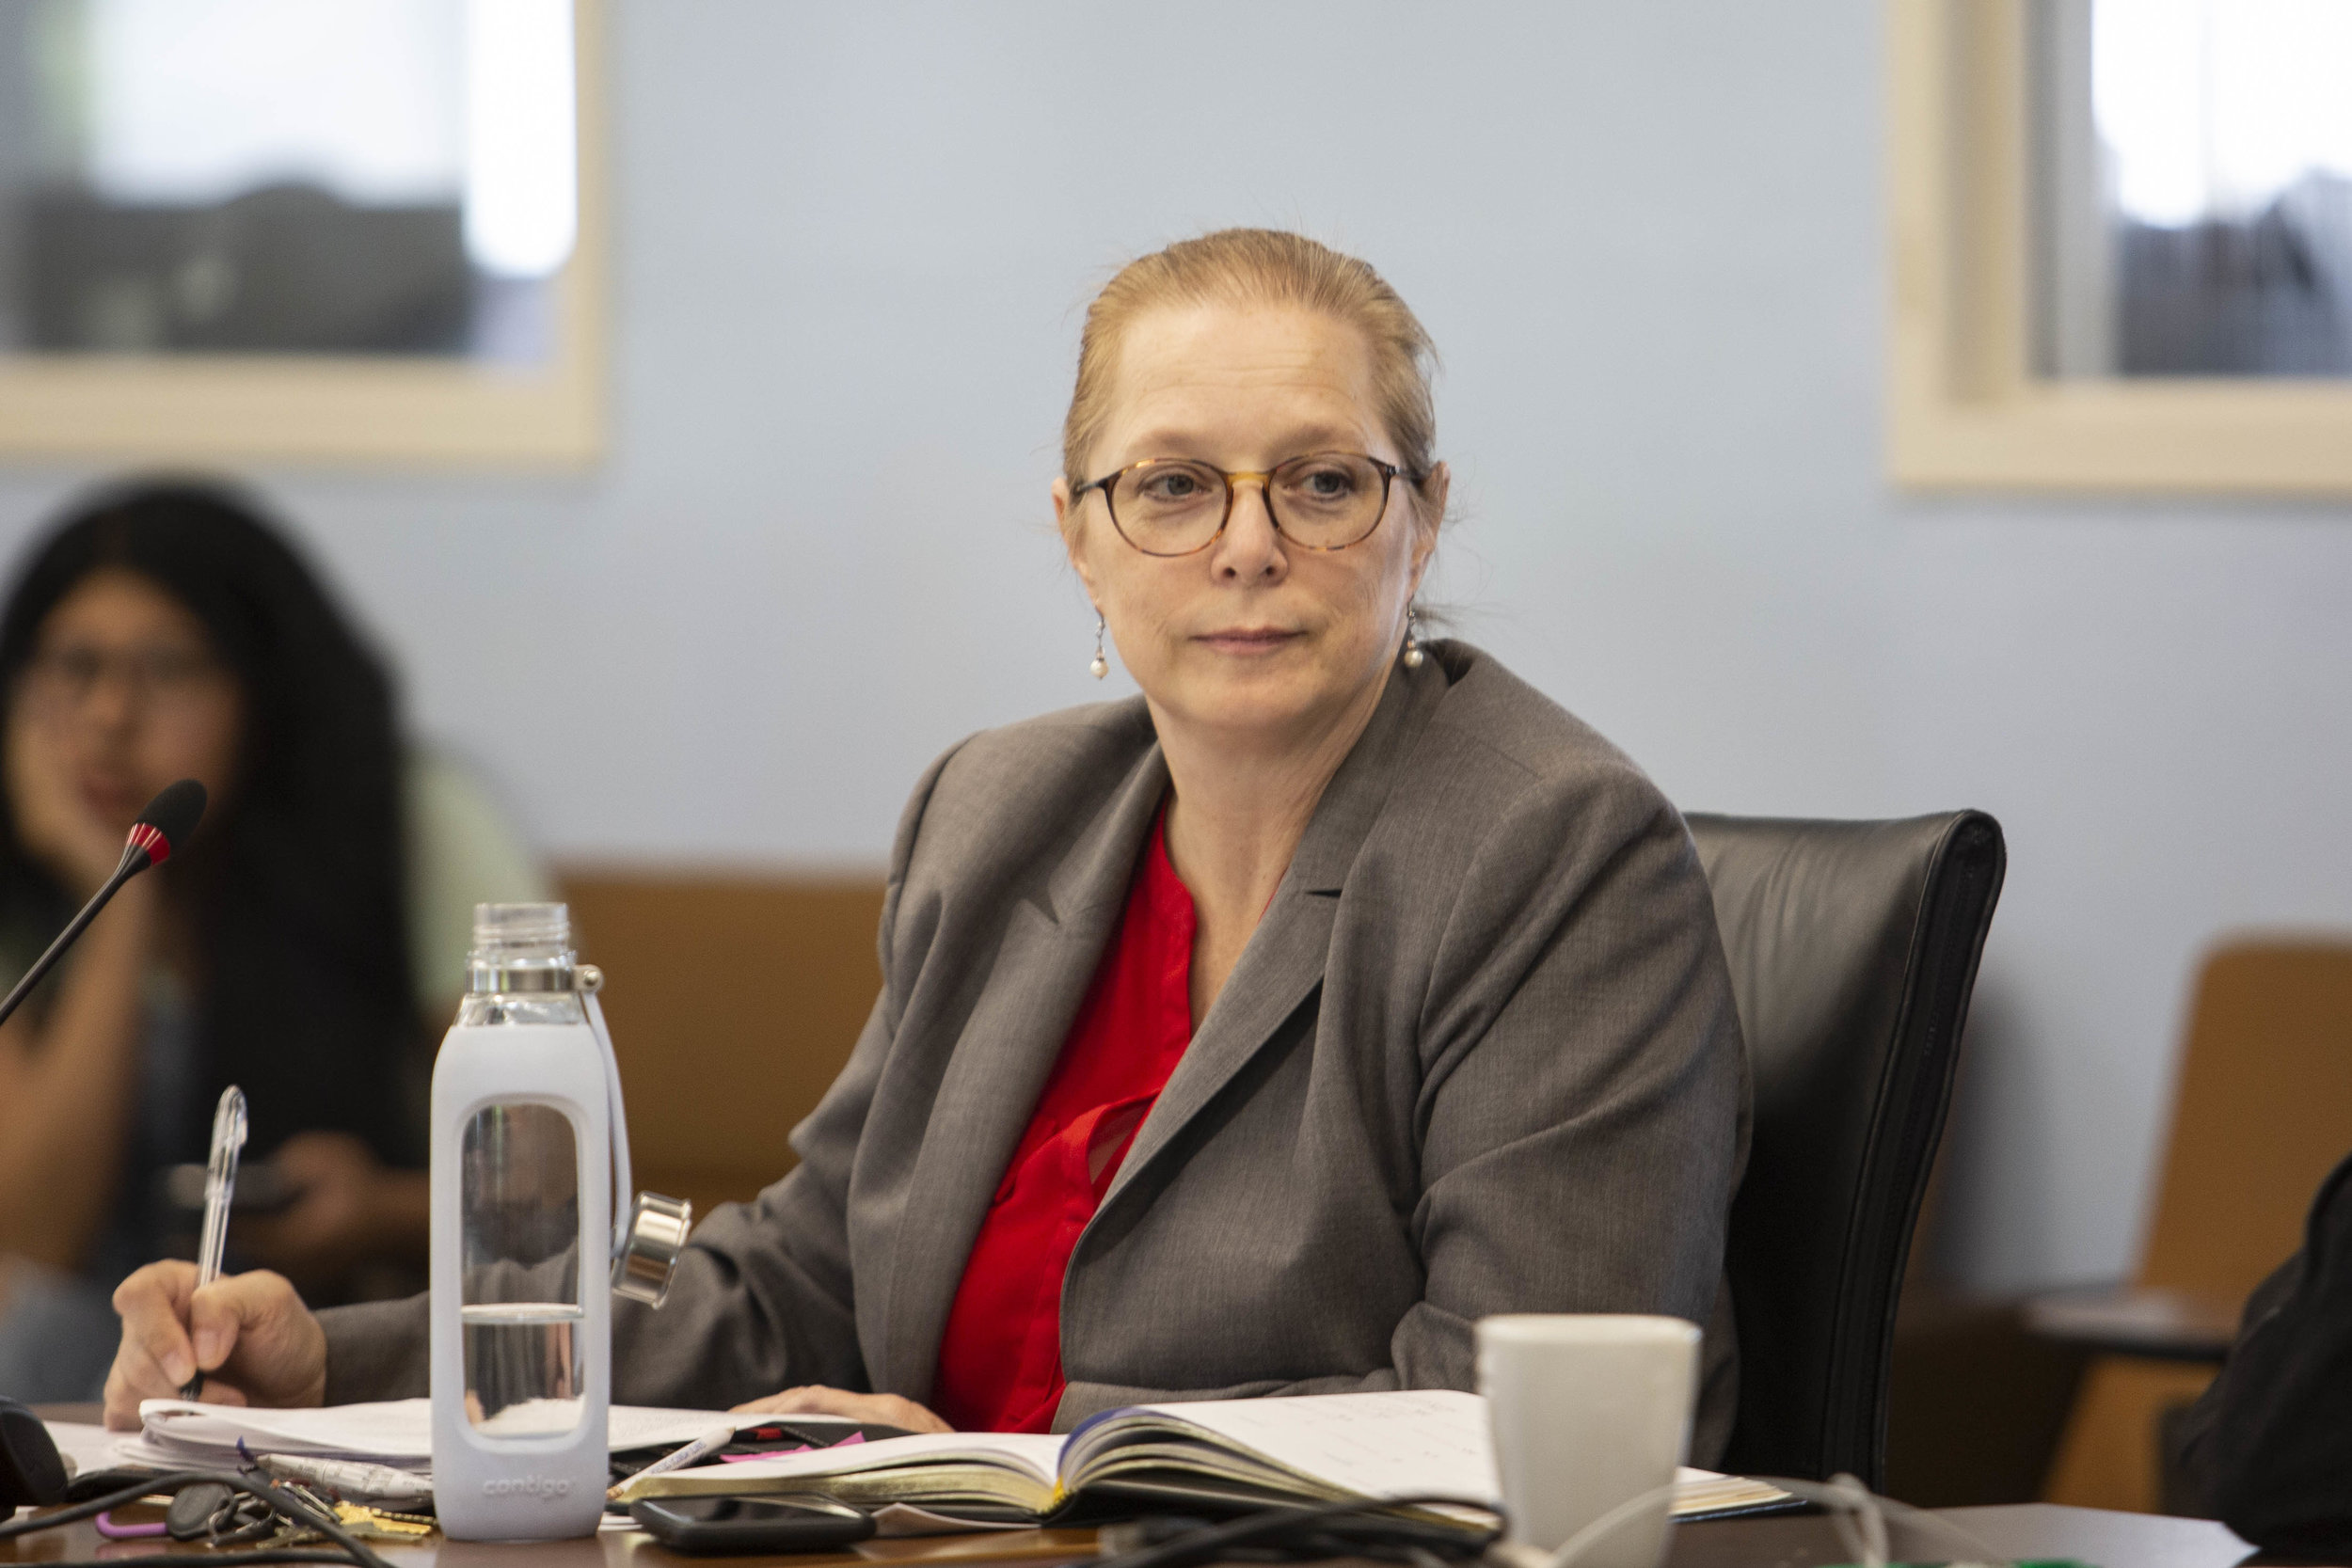 Associate Dean of Students Affairs Dr. Nancy Grass, during the Associated Students (A.S.) budget meeting on Monday May 13, 2019 at Cayton Hall, on the main Campus of Santa Monica College in Santa Monica, Calif. (Yasamin Jtehrani / The corsair